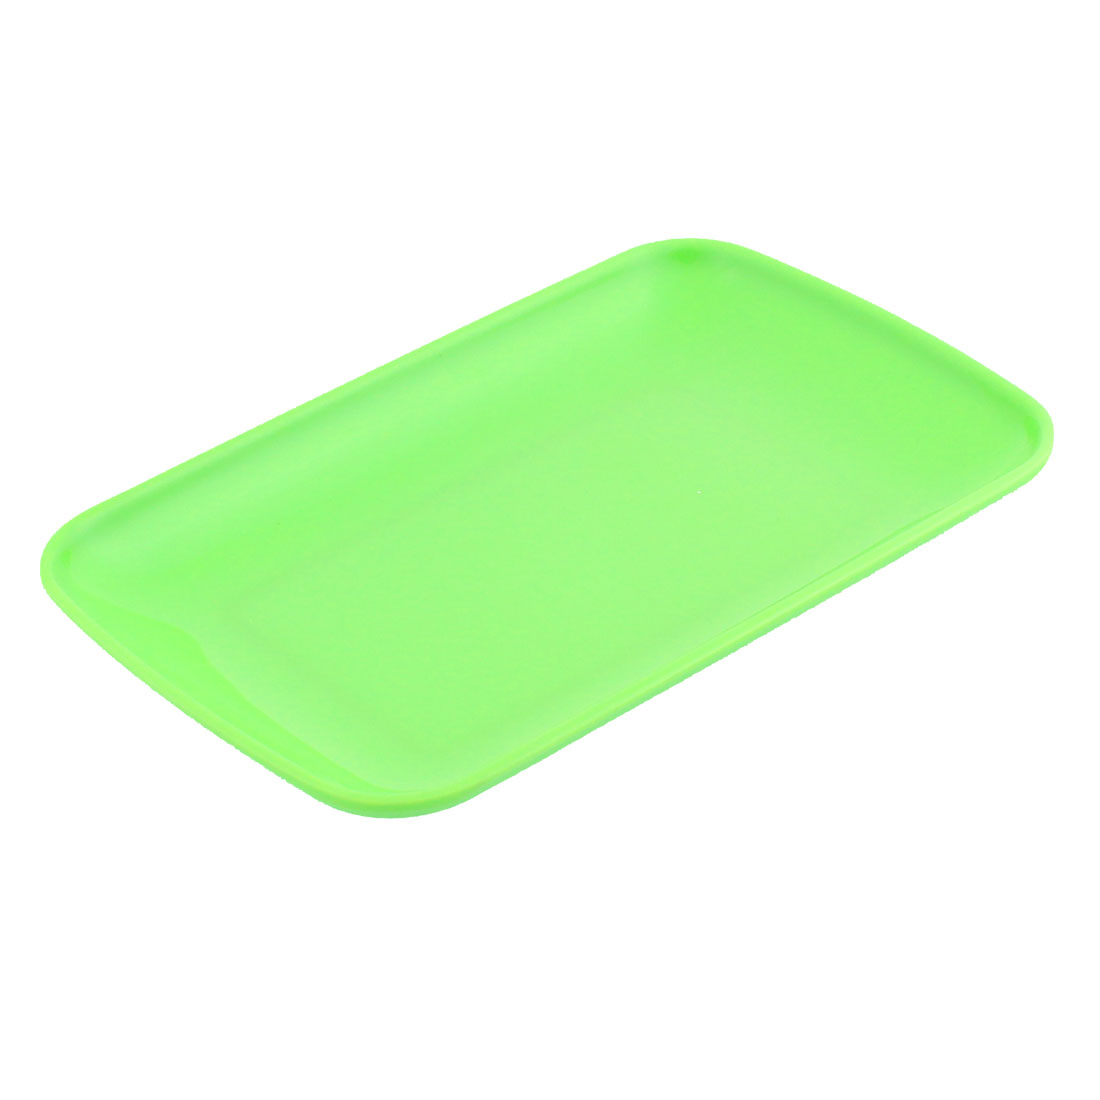 Plastic Rectangle Design Dessert Appetizer Vermicelli Plate Green